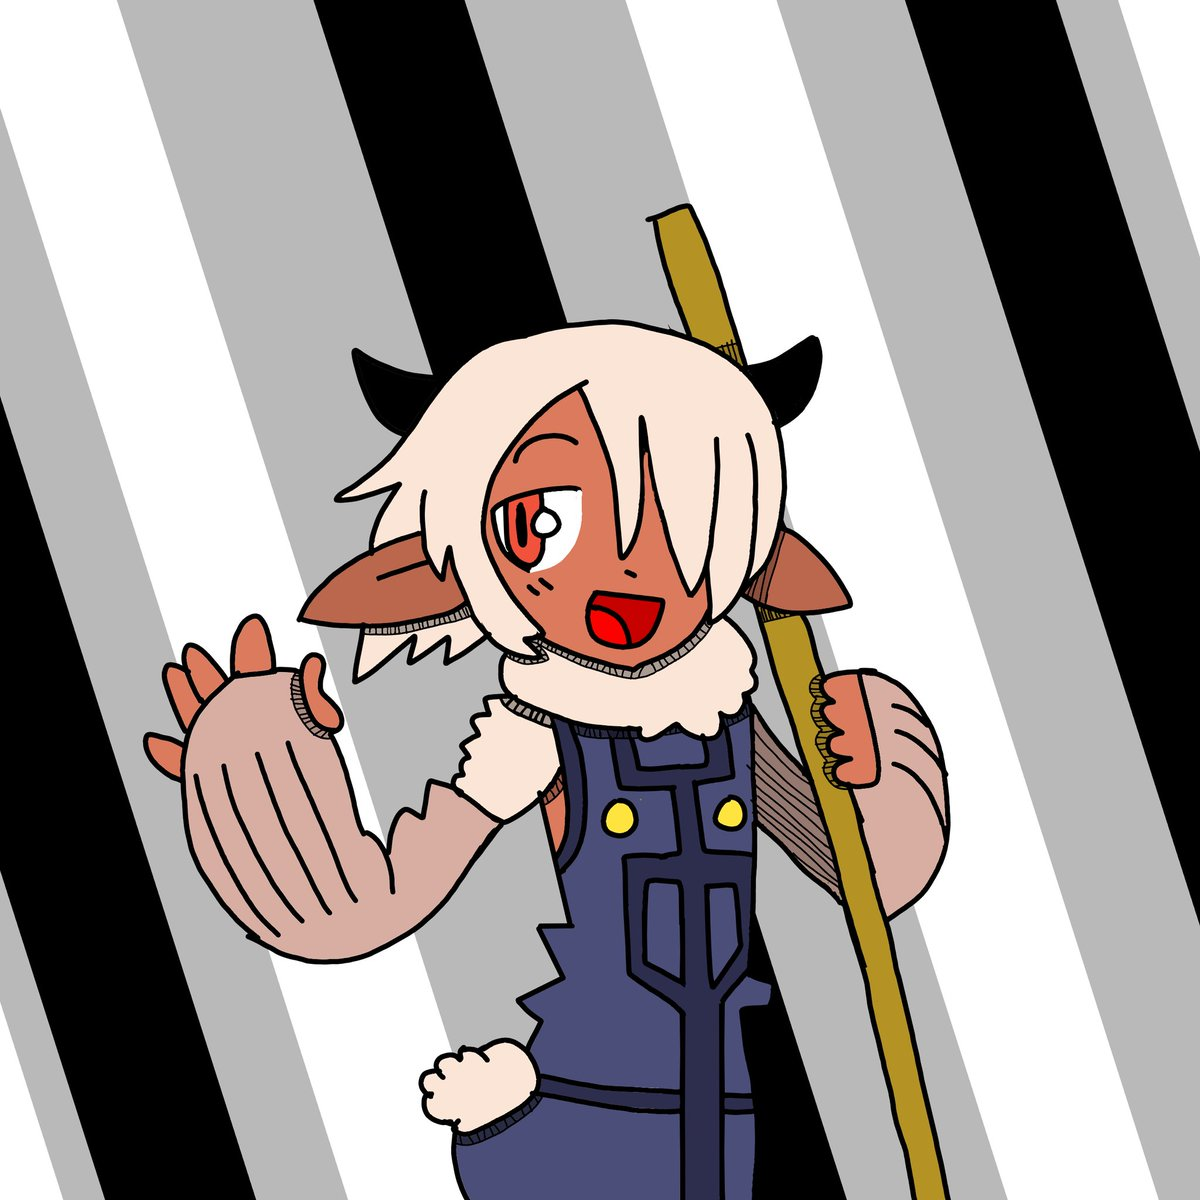 I tried recreating a panel from the Monster Musume manga with a Crazy Taxi style of shading. It wasn't reaching that style, so I gave up and tried my own thing.  #Monstergirls #digitalart #art #artistsontwitter #artwork #artist #manga